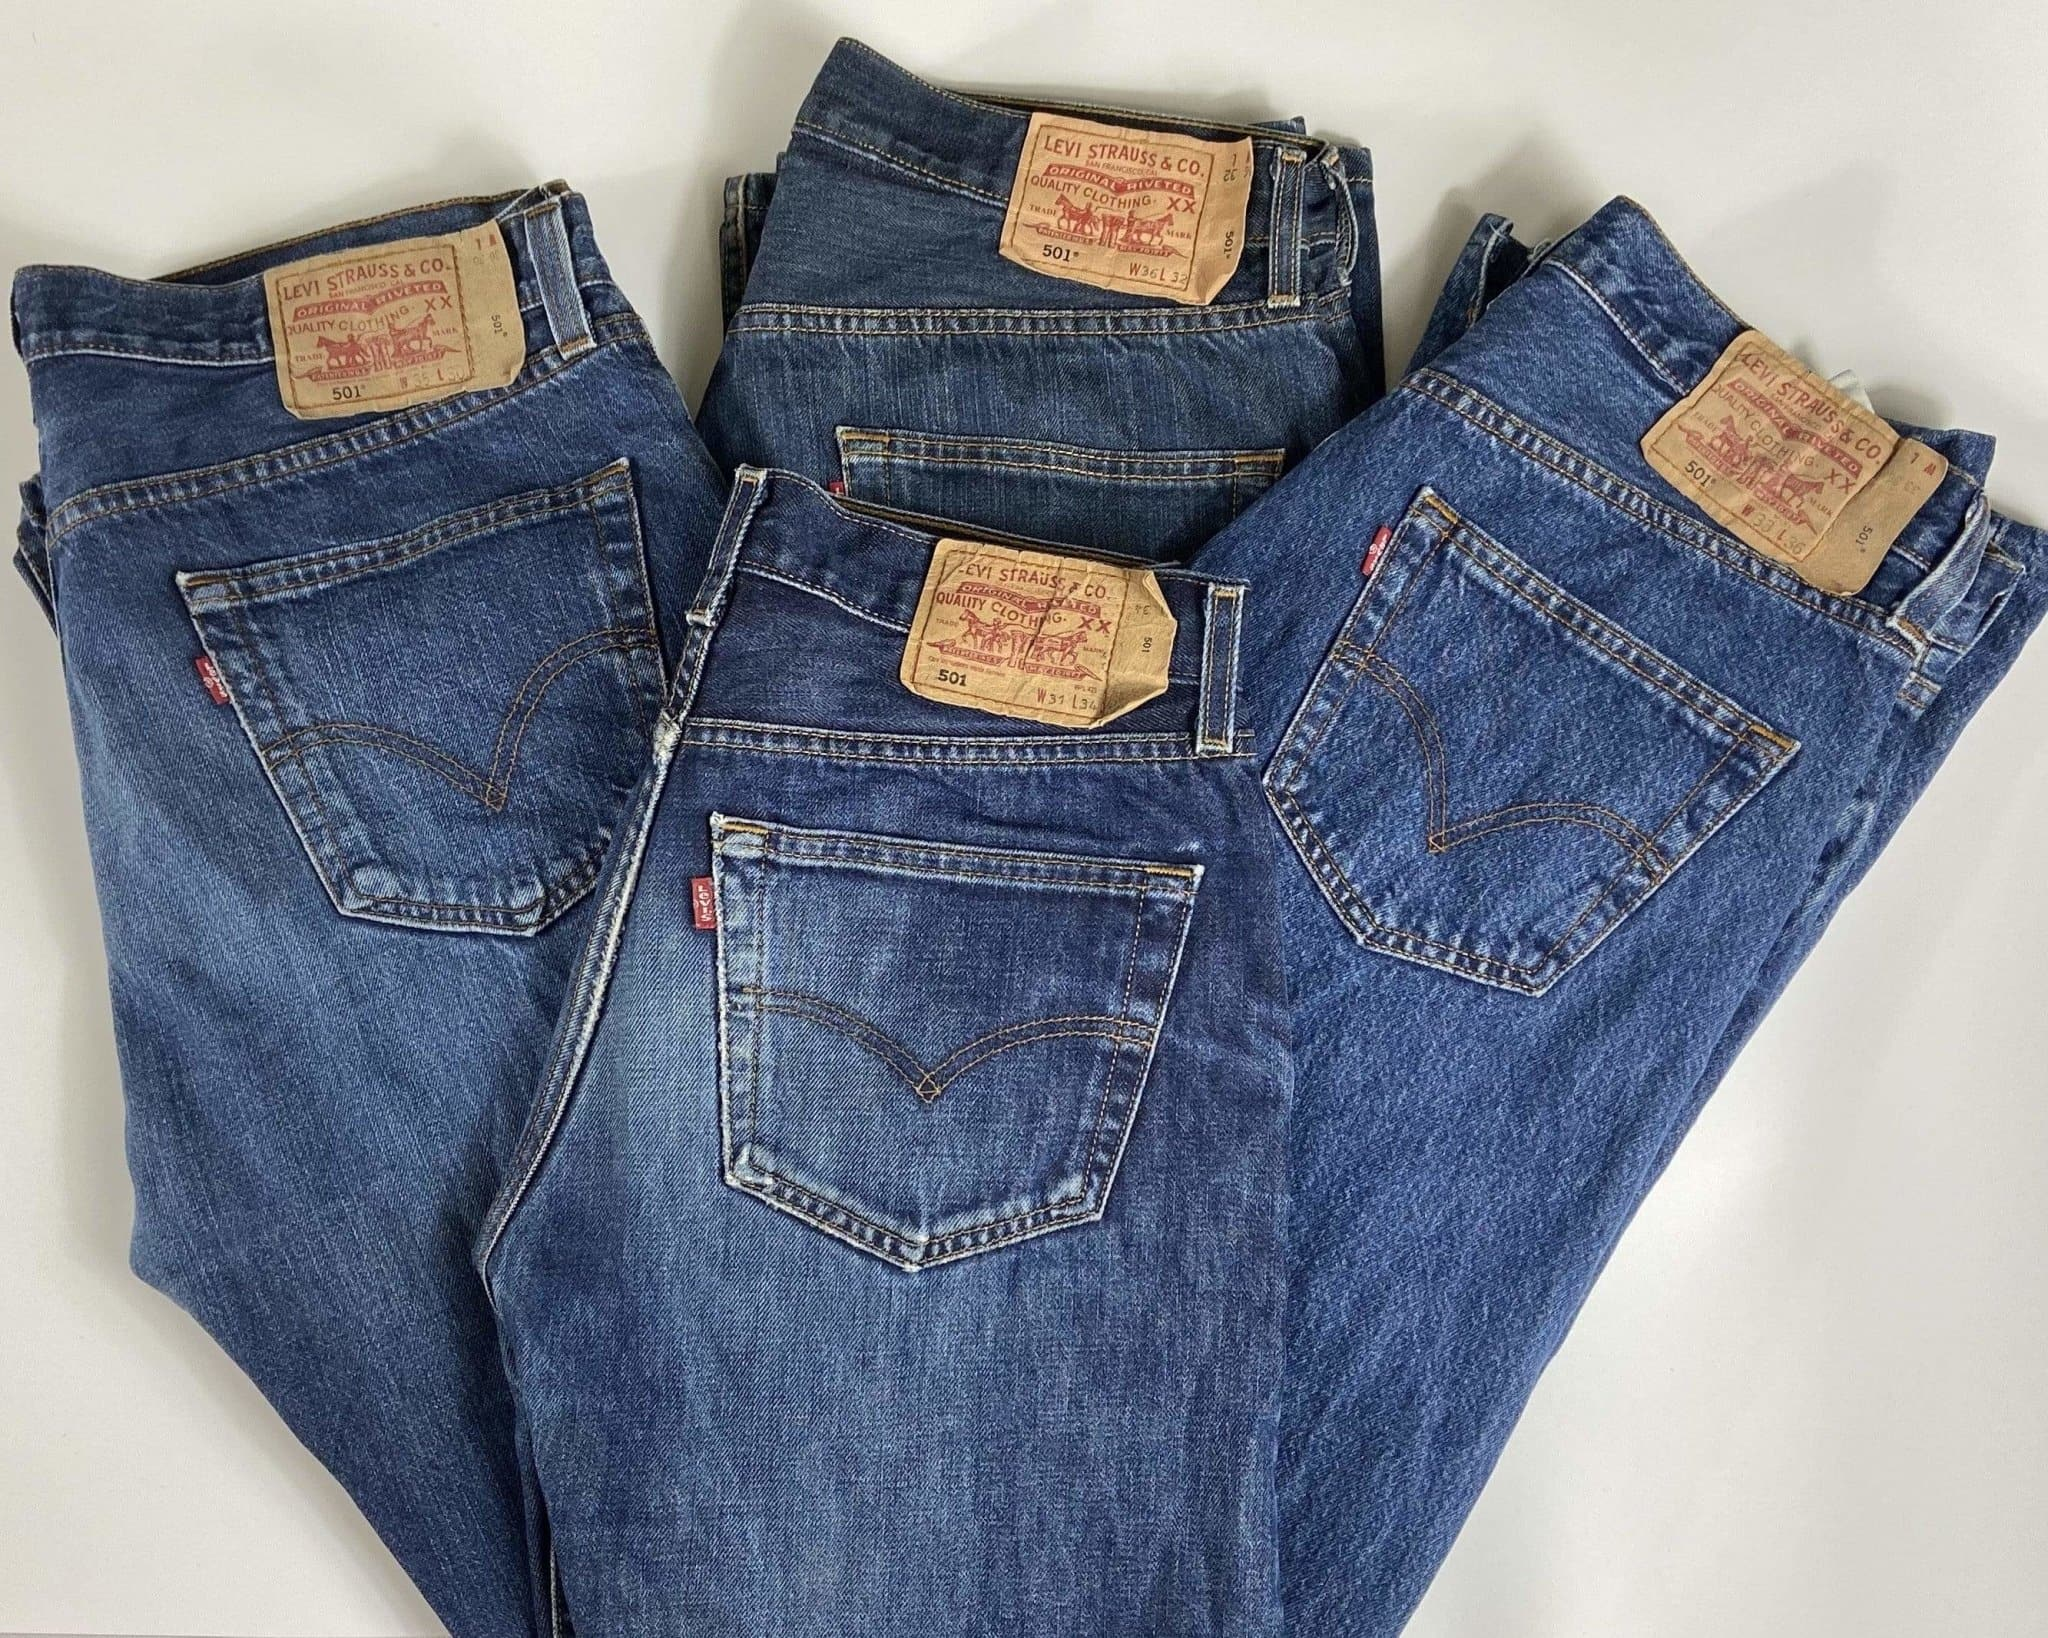 Vintage Levi's Classic 501 Jeans W34 L32 (LJ5) - Discounted Deals UK